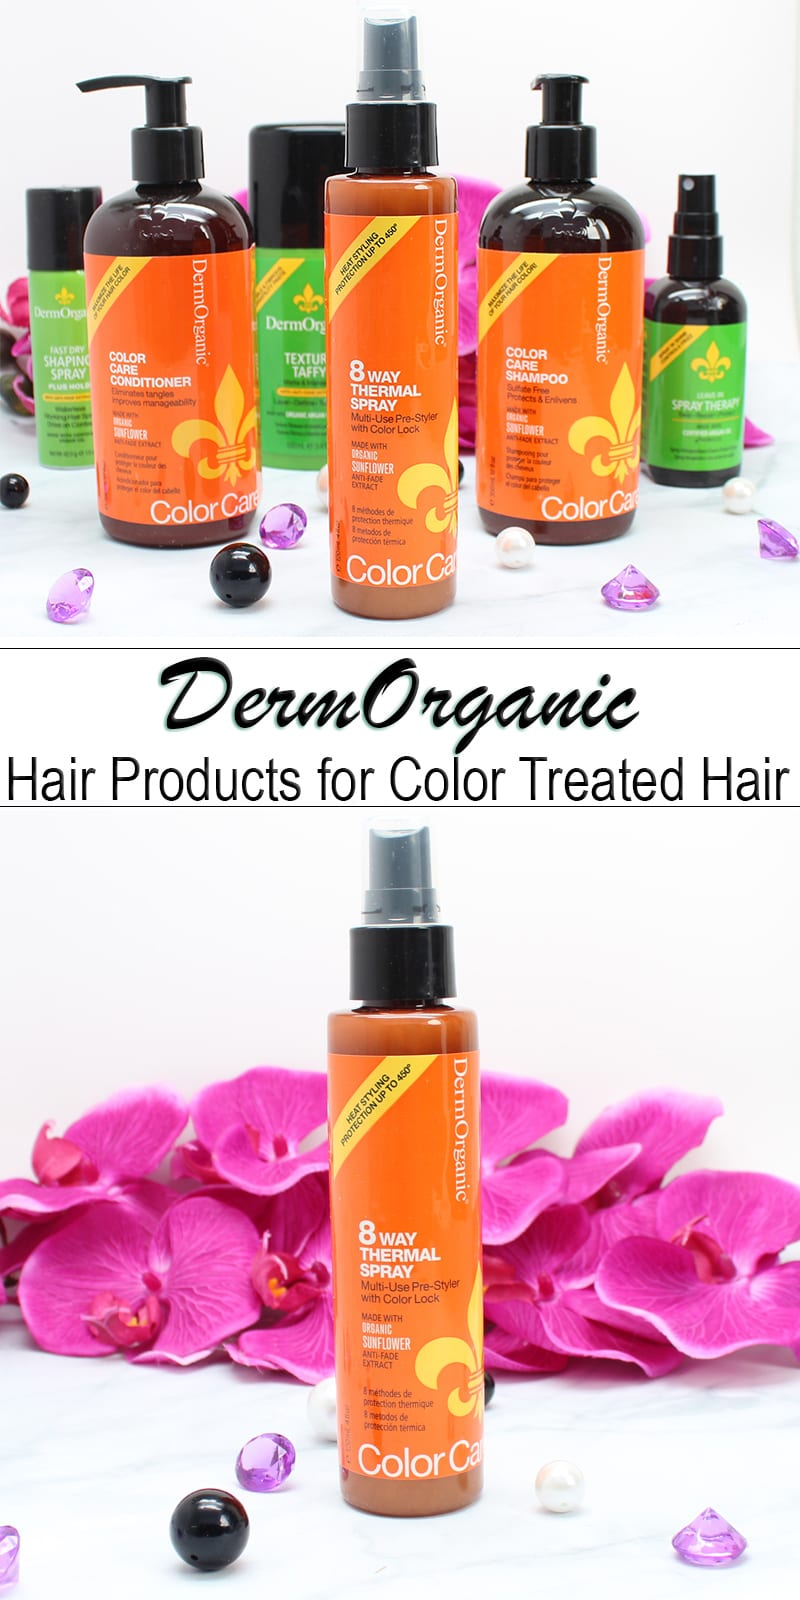 DermOrganic Color Care Hair Care - Hair products for color treated hair